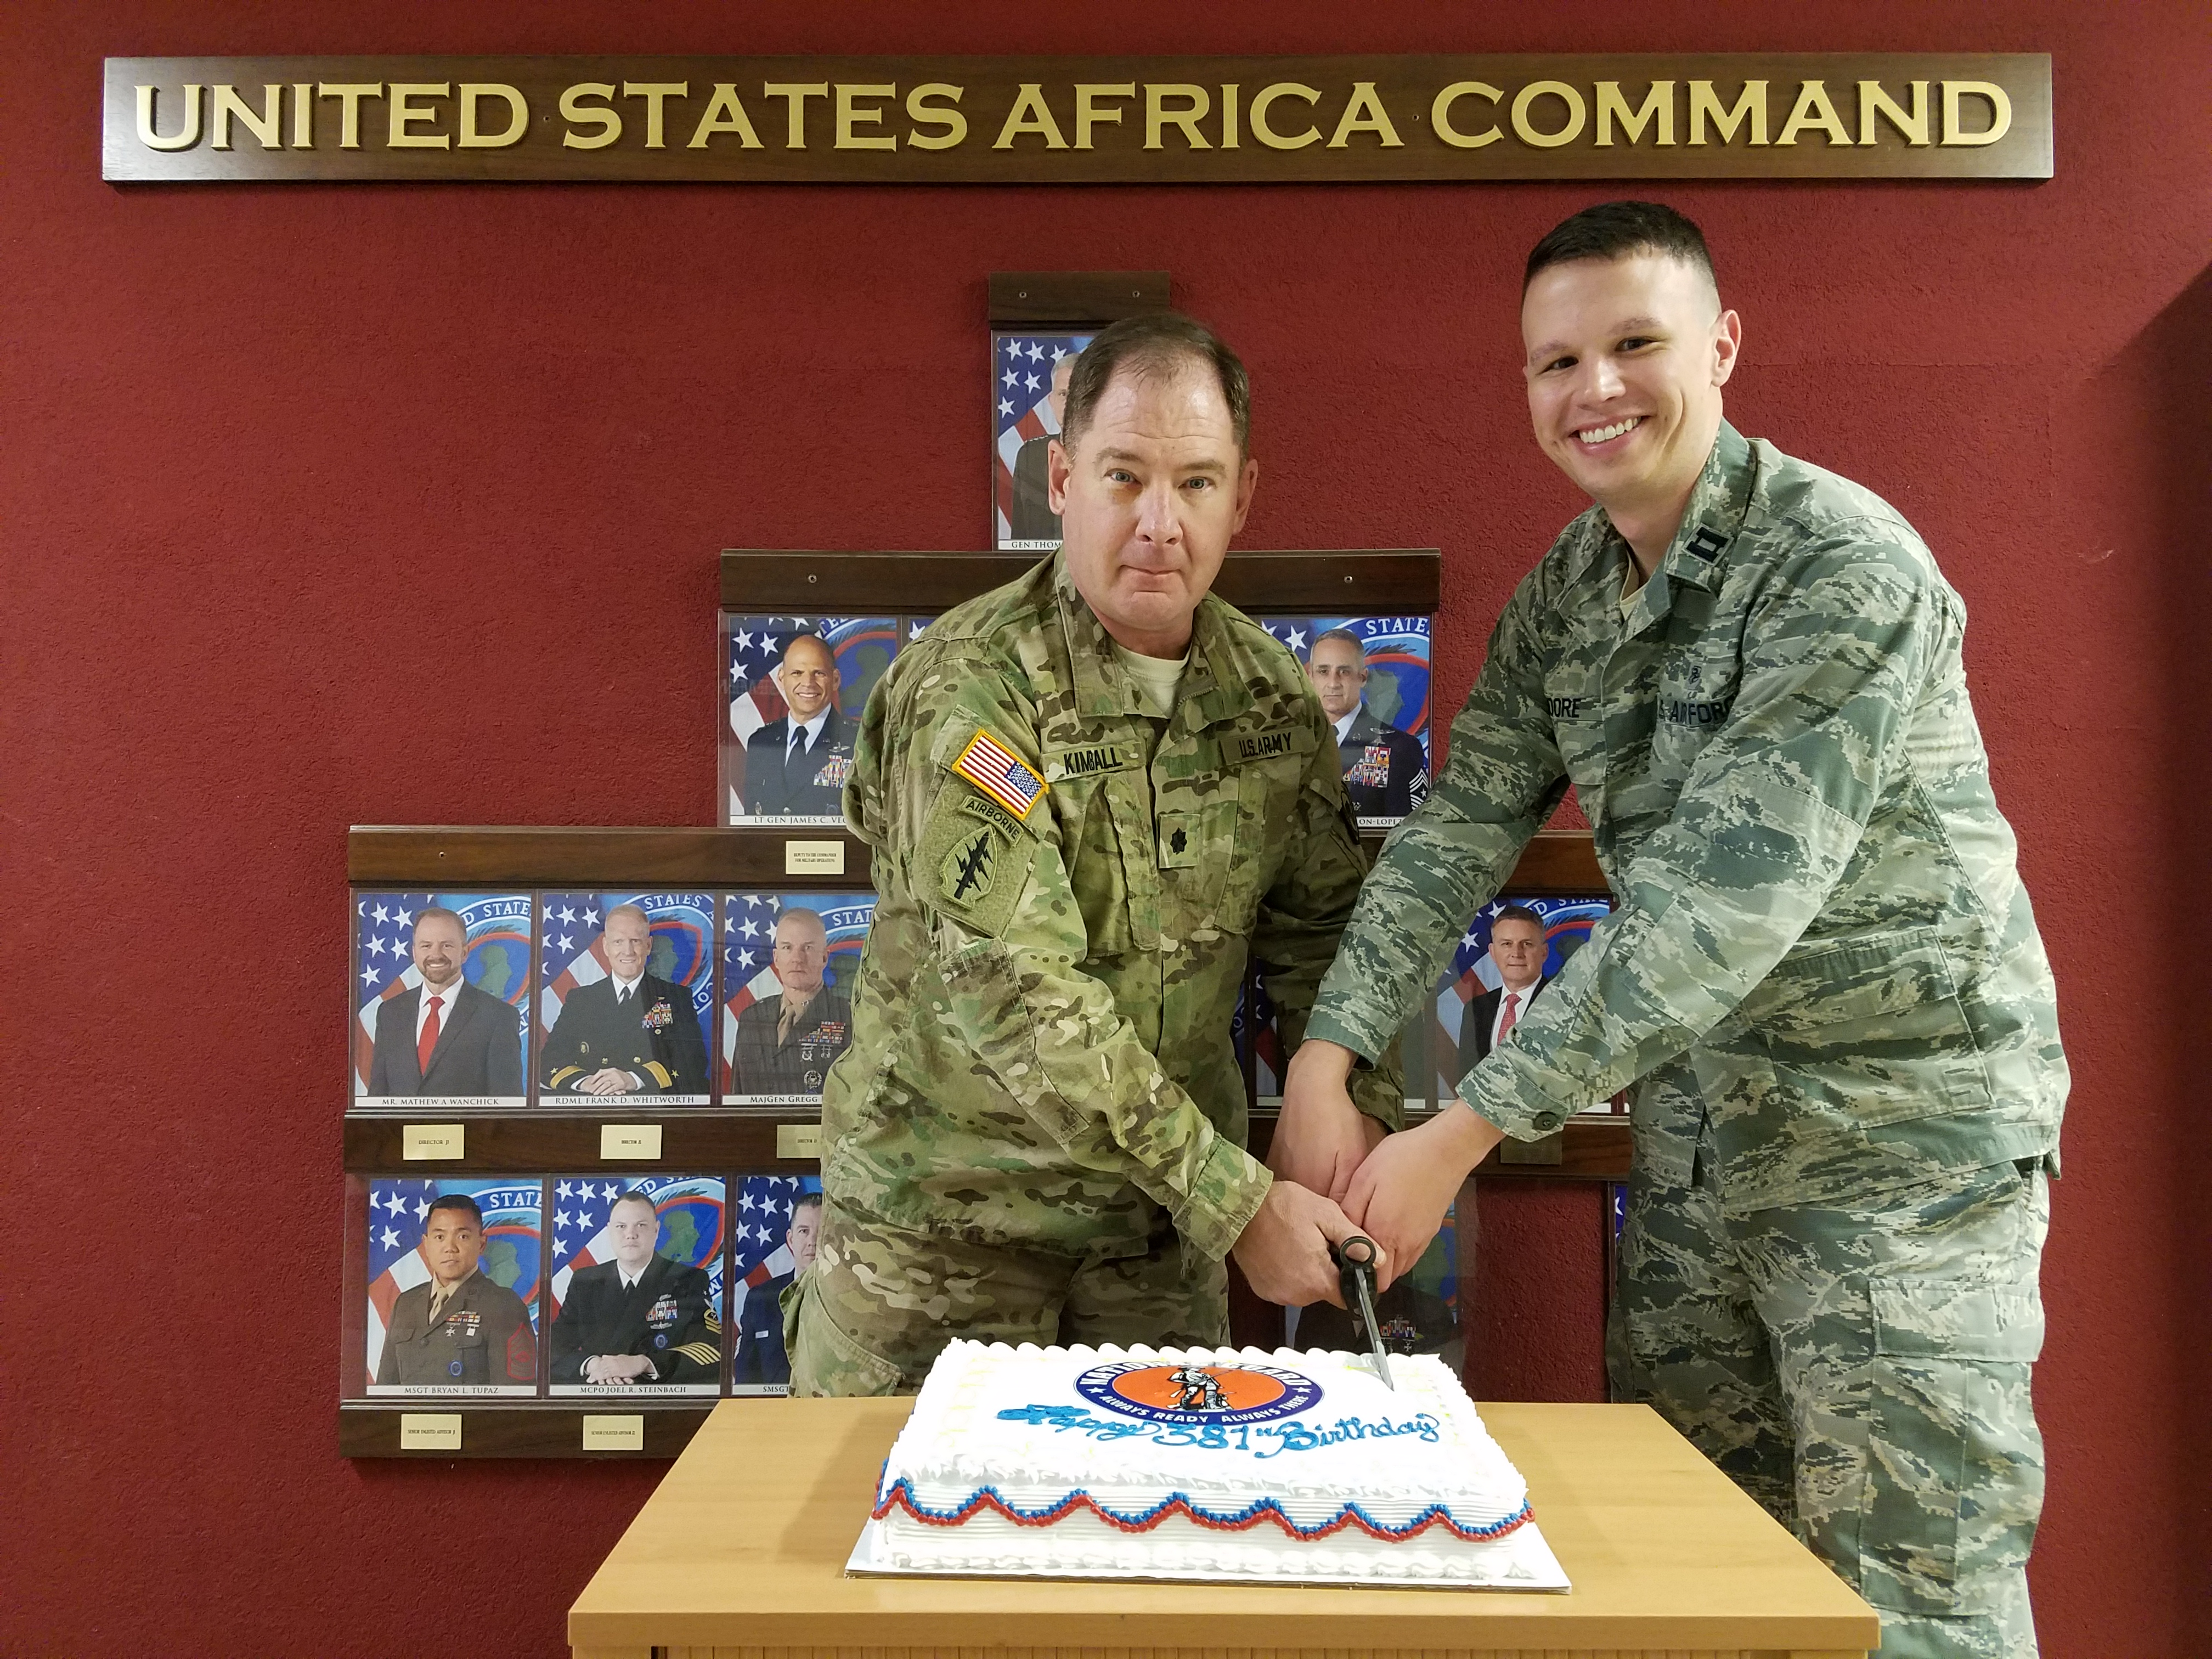 Lt. Col. Chris Kimball and Capt David Moore, AFRICOM J5 National Guard Integration Office, cut cake during the National Guard Birthday celebration at the U.S. Africa Command headquarters in Stuttgart, Germany.